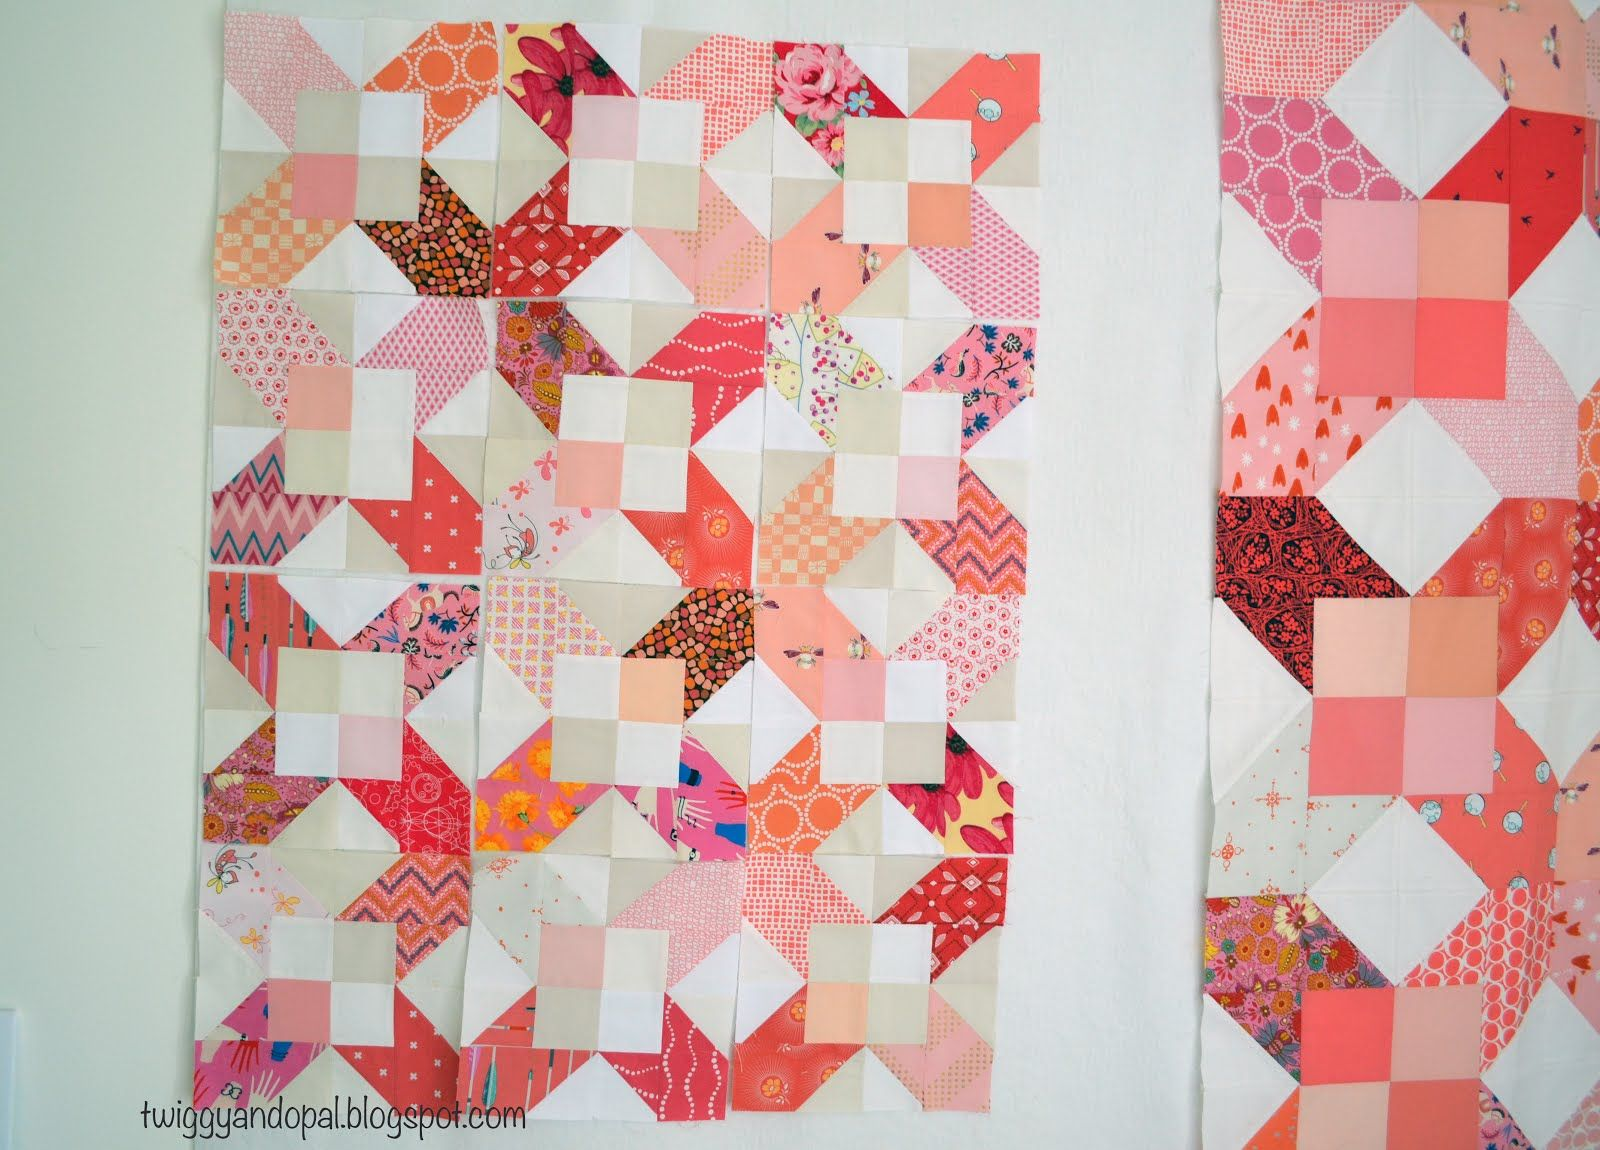 I swear I must have a condition! It isn't enough that I make a quilt filled with glorious fabric and color. It should end there. Make the...